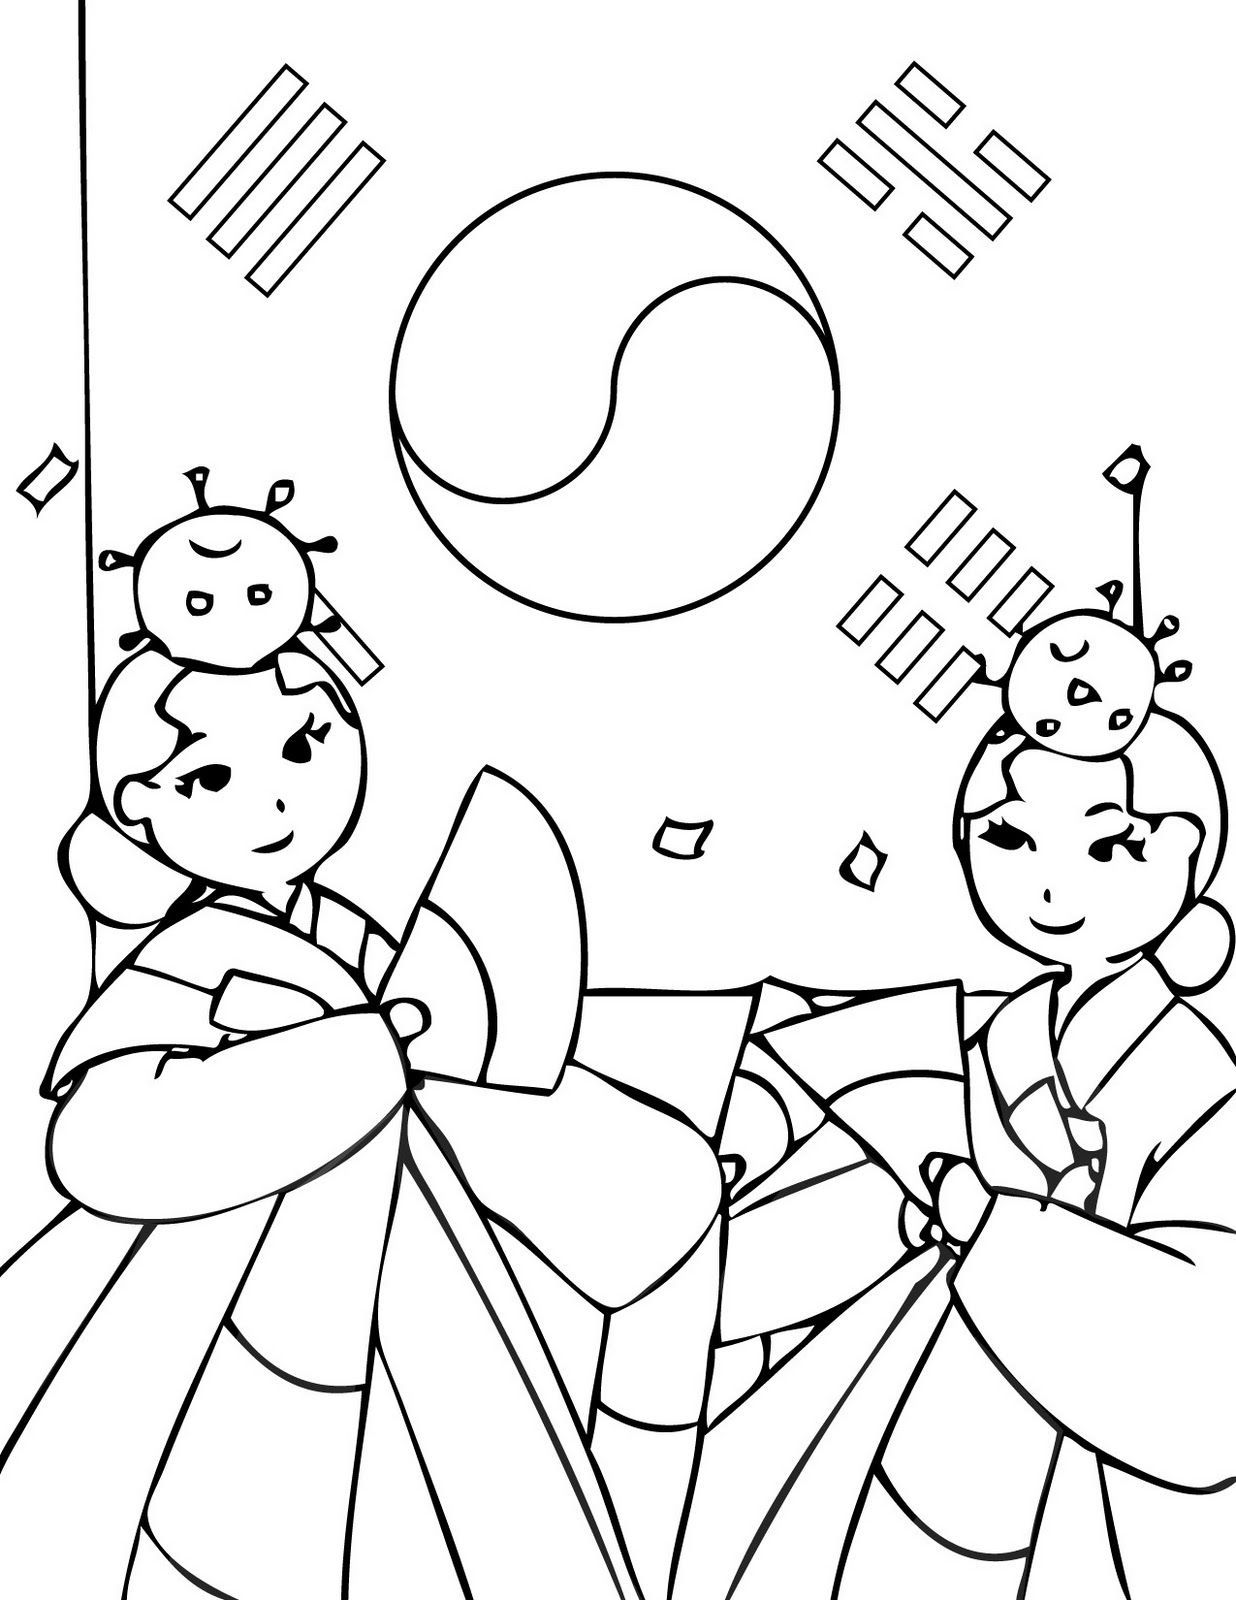 South korea coloring book - Korea Coloring Page The Cutest Blog